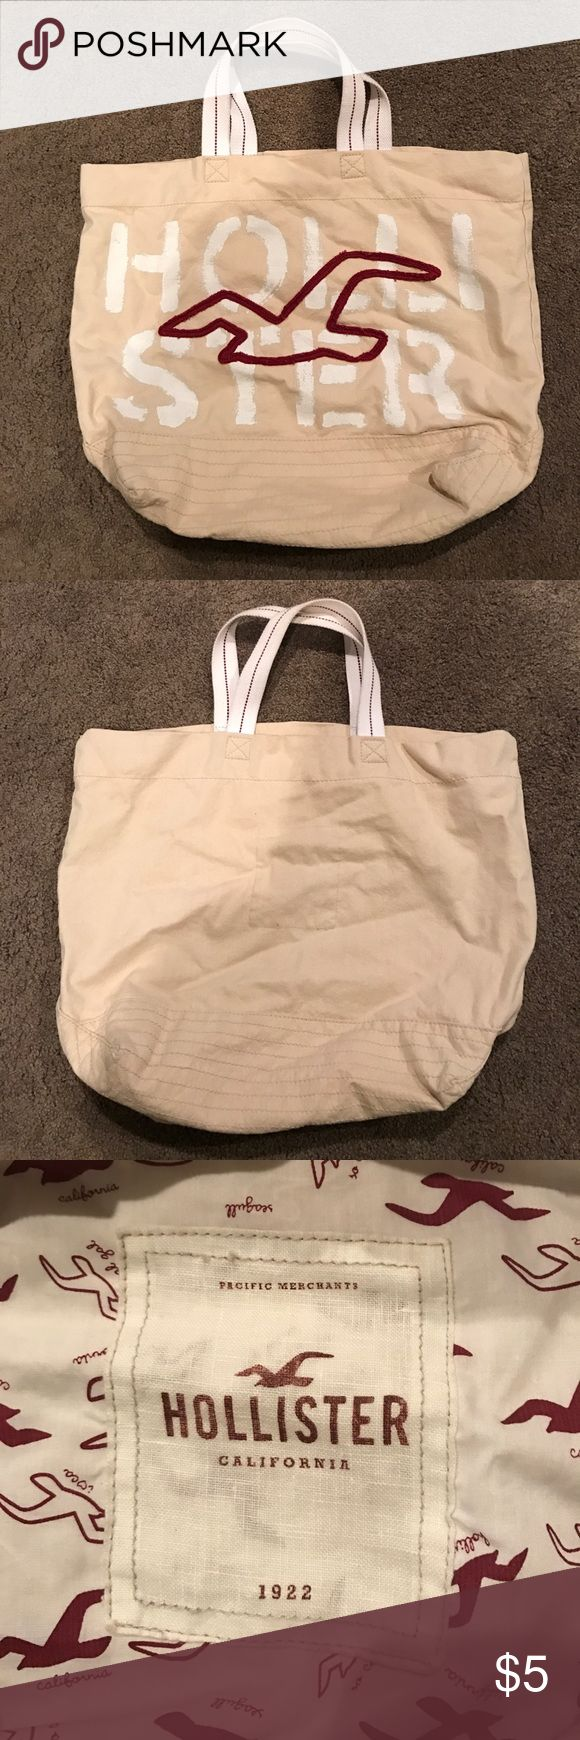 Hollister tote bag cream color Hollister tote bag.  Cream/tan color with red and white design. Hollister Bags Totes